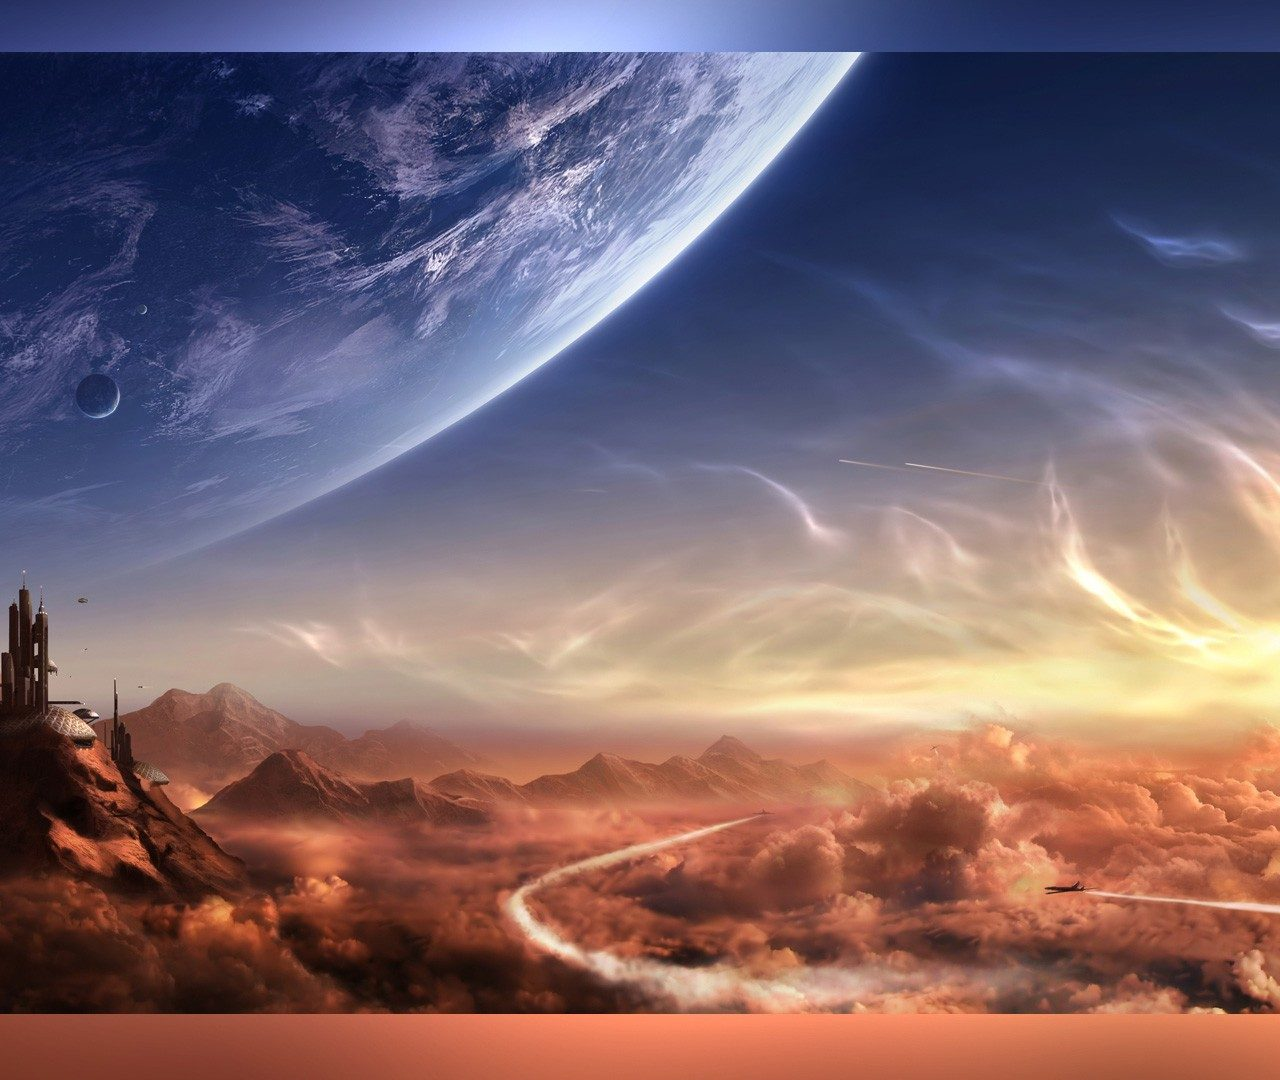 Spectacular wallpapers hd wallpapers - Spectacular wallpaper ...